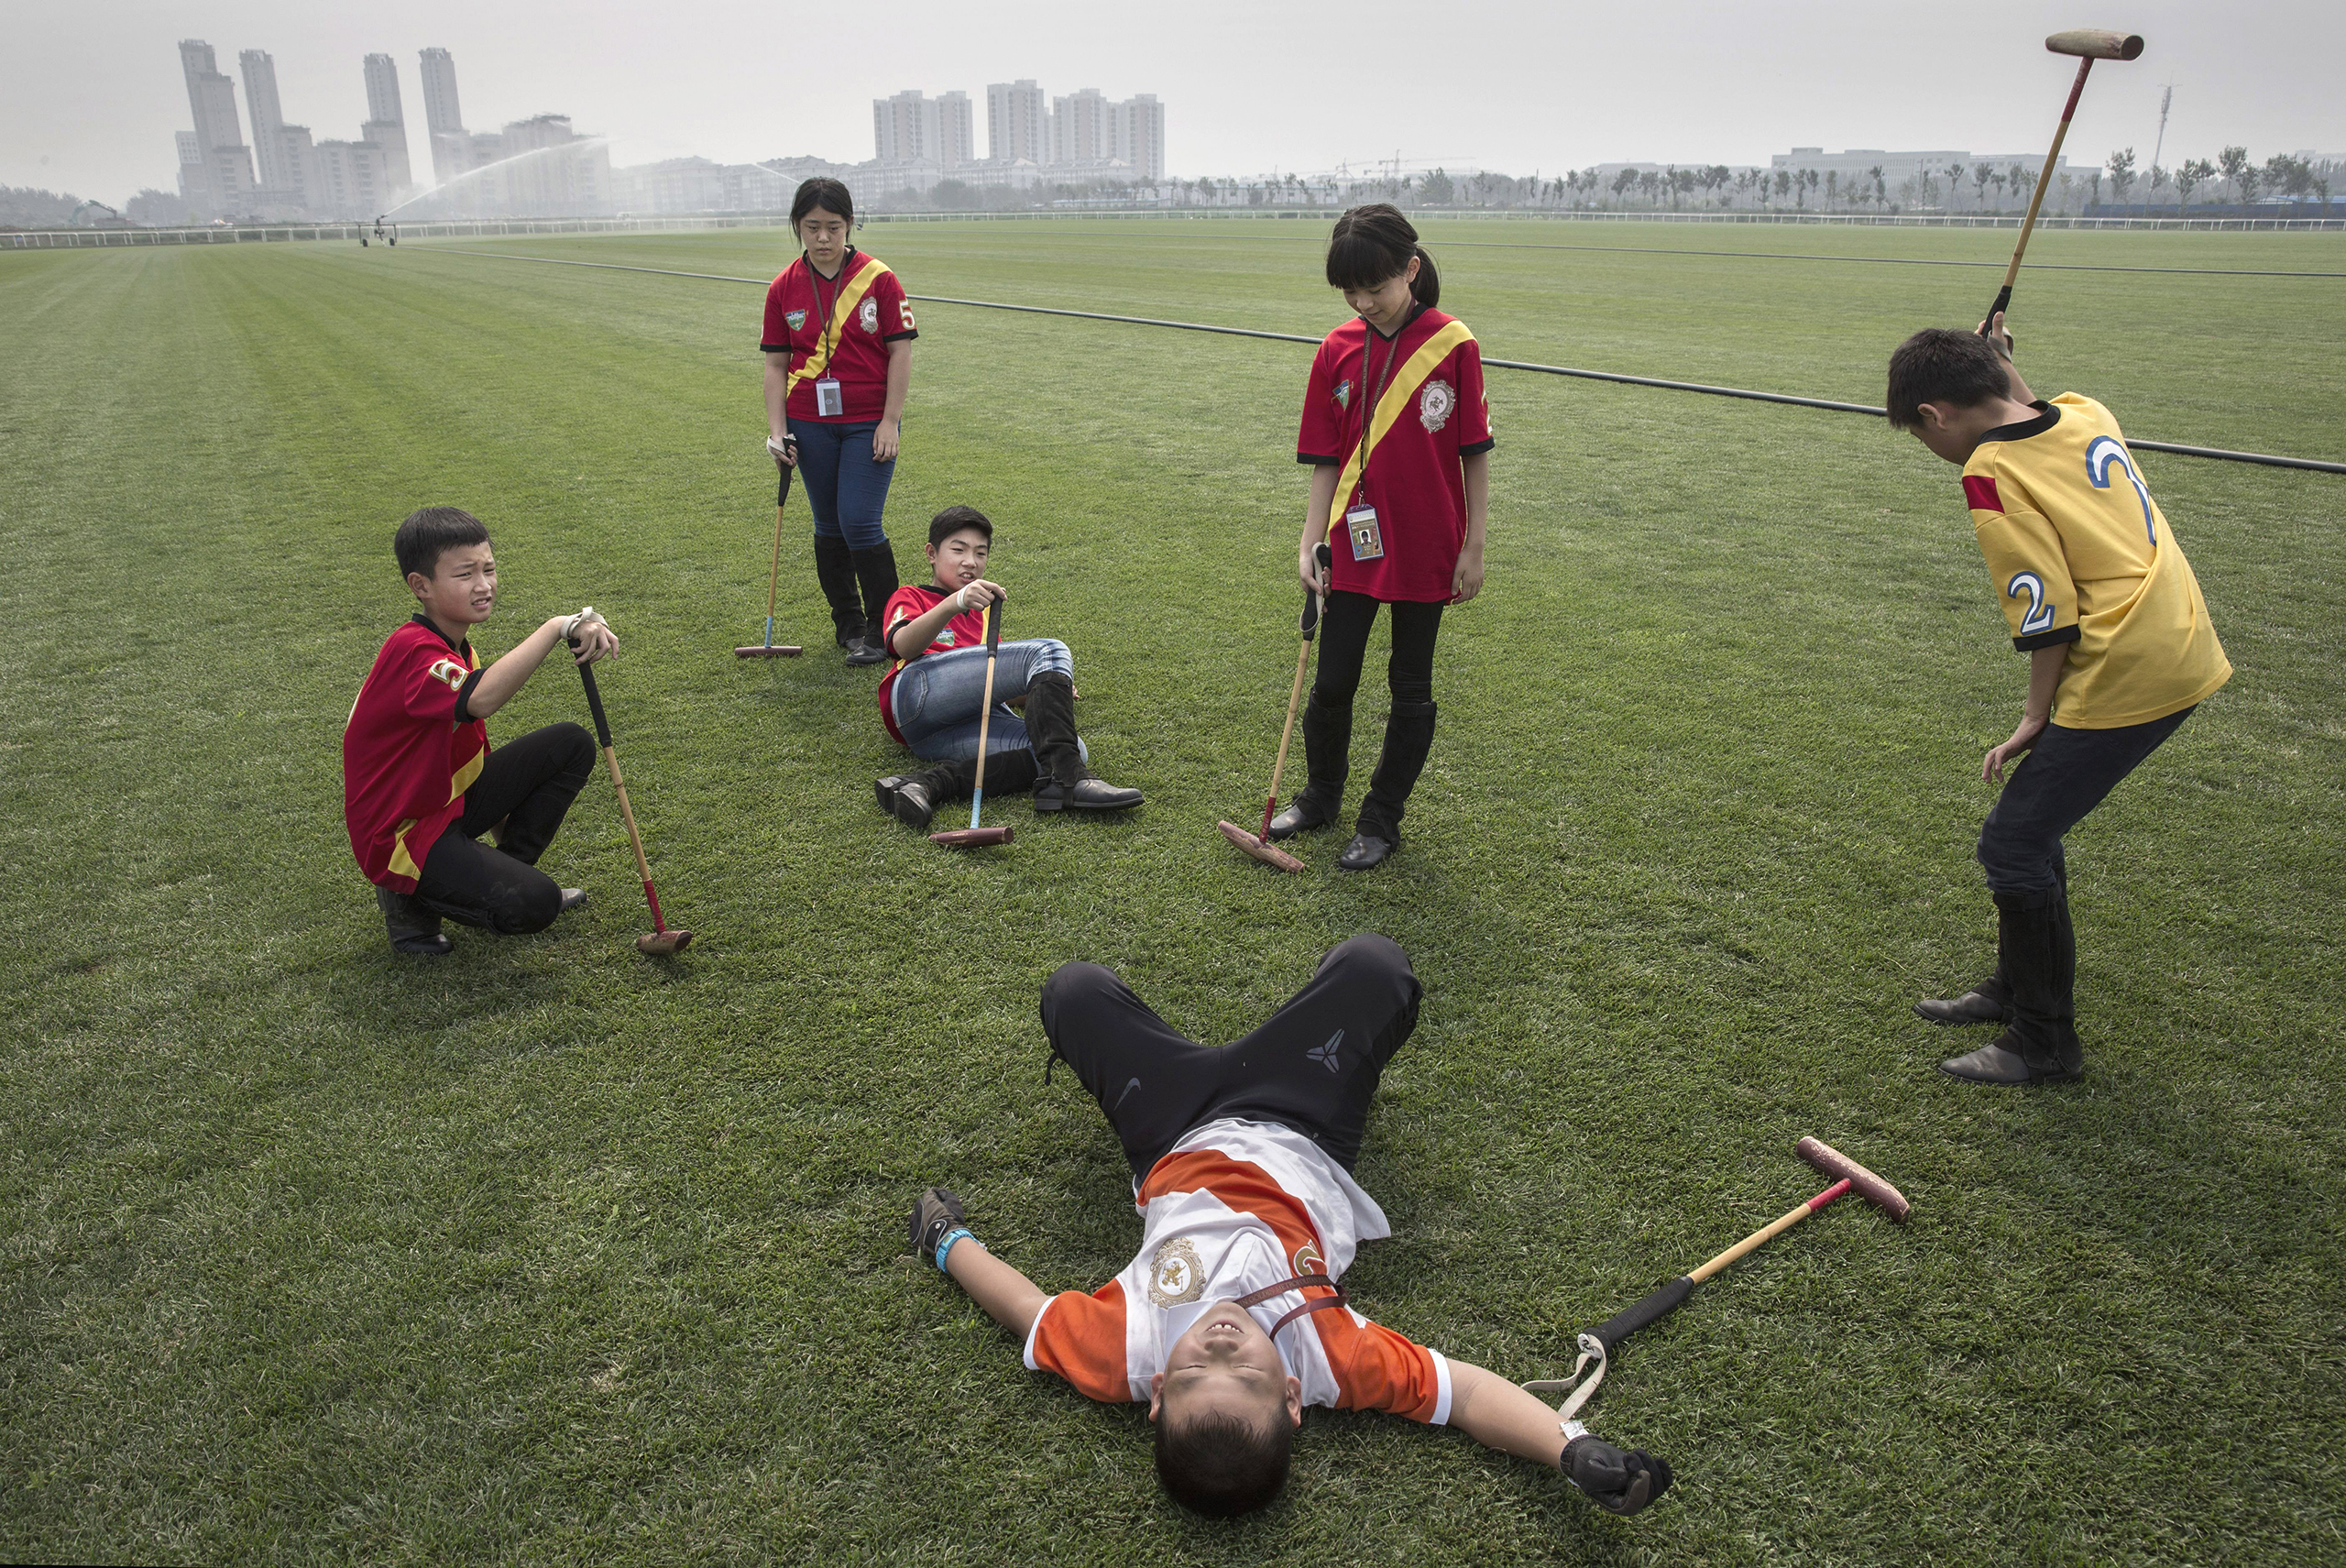 Young Chinese players from the Junior Polo Program take a break during stick and ball training at a summer camp held at the Tianjin Goldin Metropolitan Polo Club in Tianjin, China, on July 17, 2016.